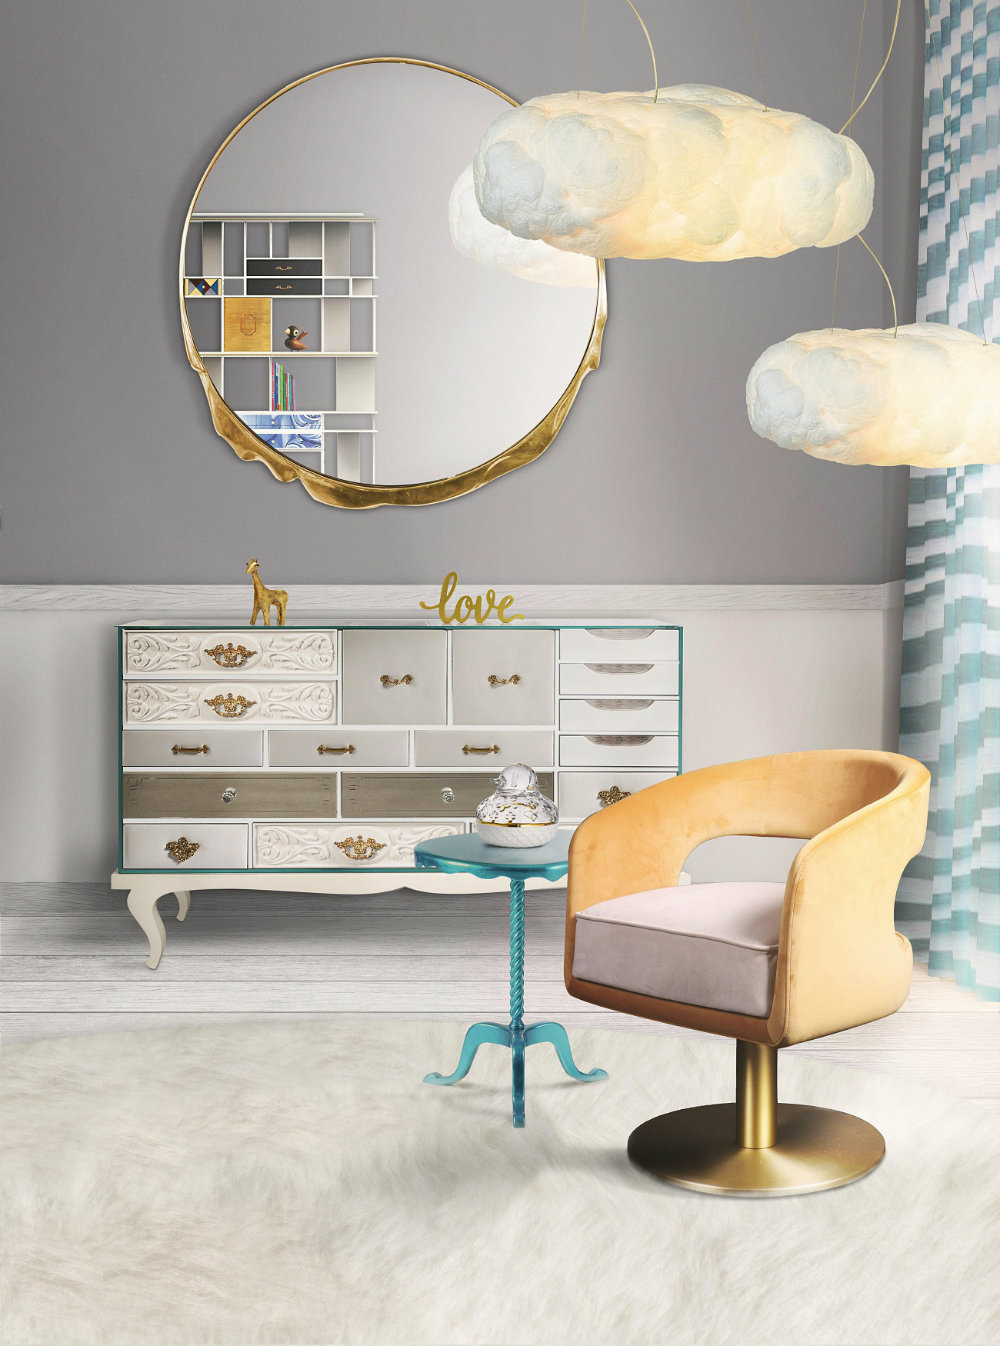 Discover Here How to Brighten Up A Child's Room